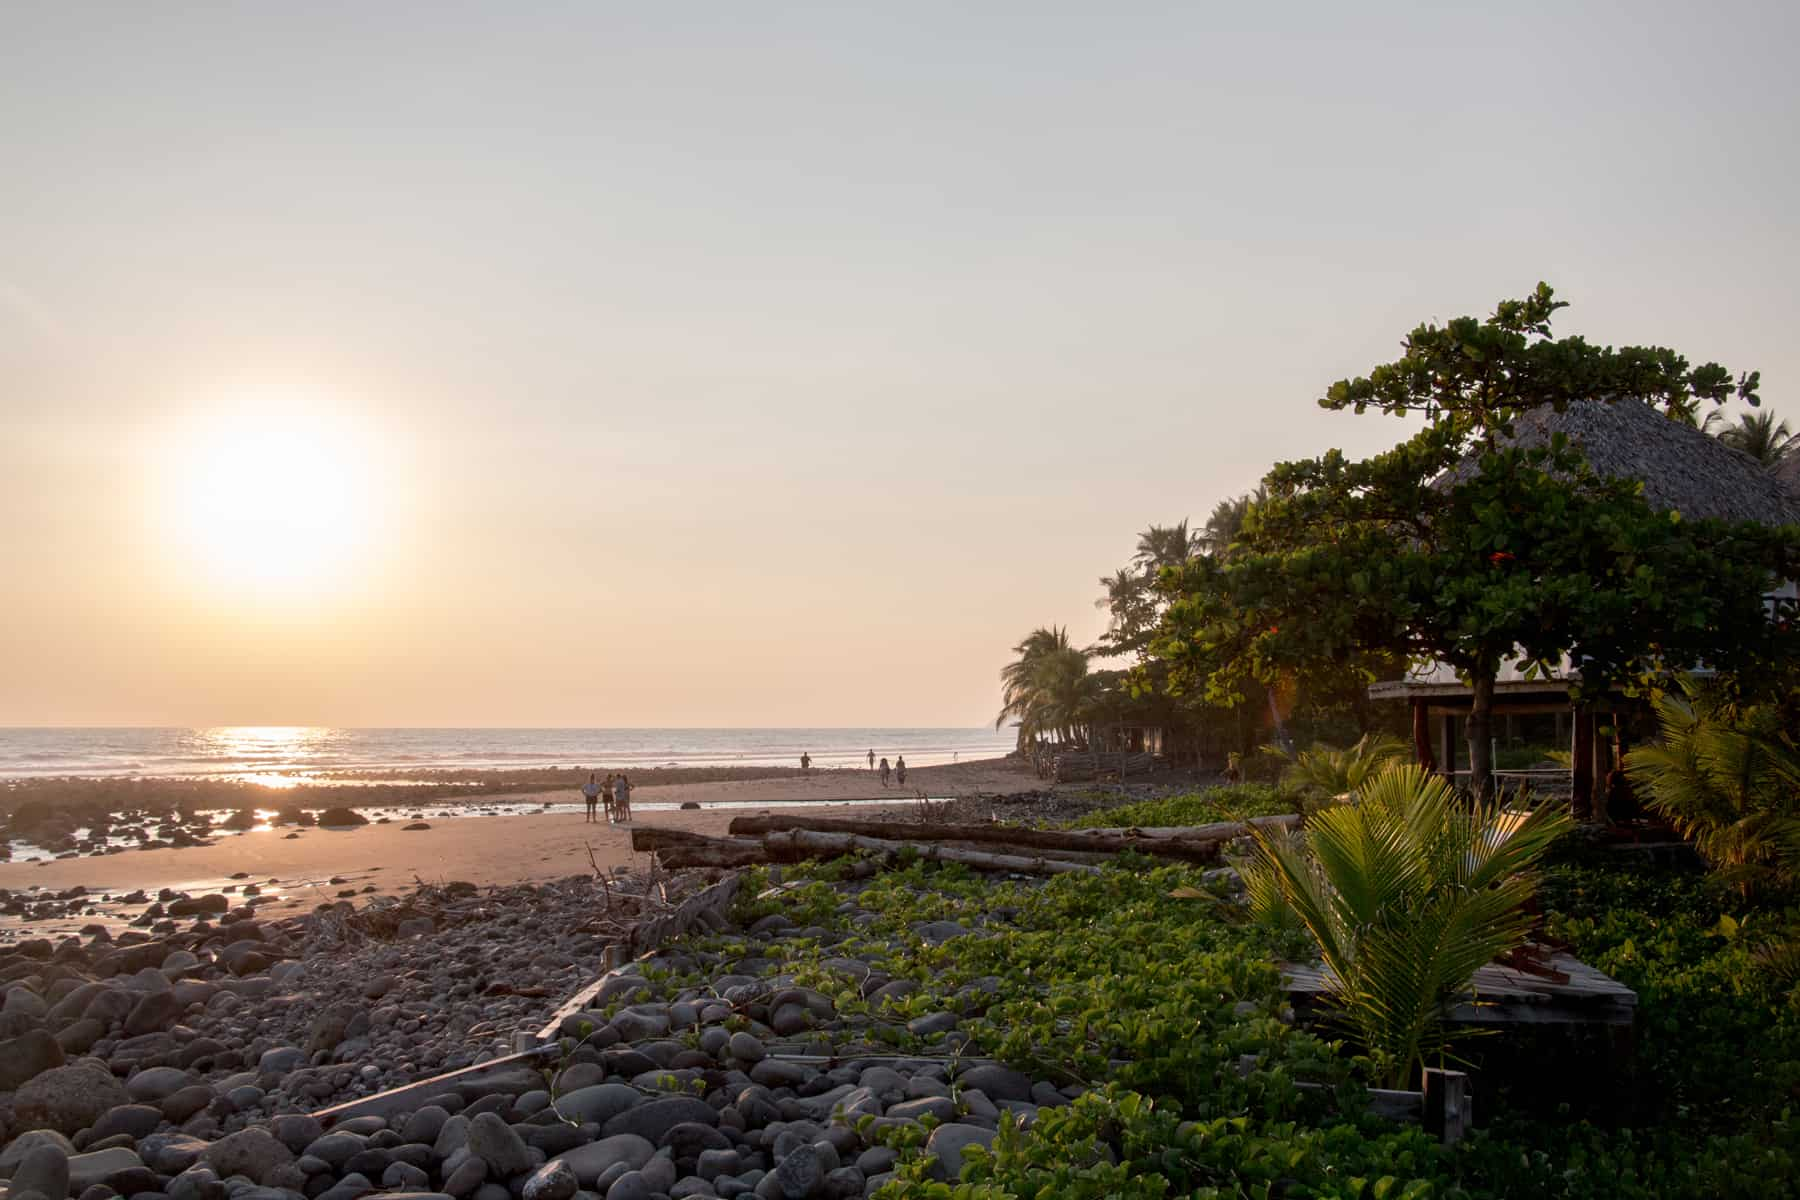 Sun setting over a beach with trees lining it in El Zonte